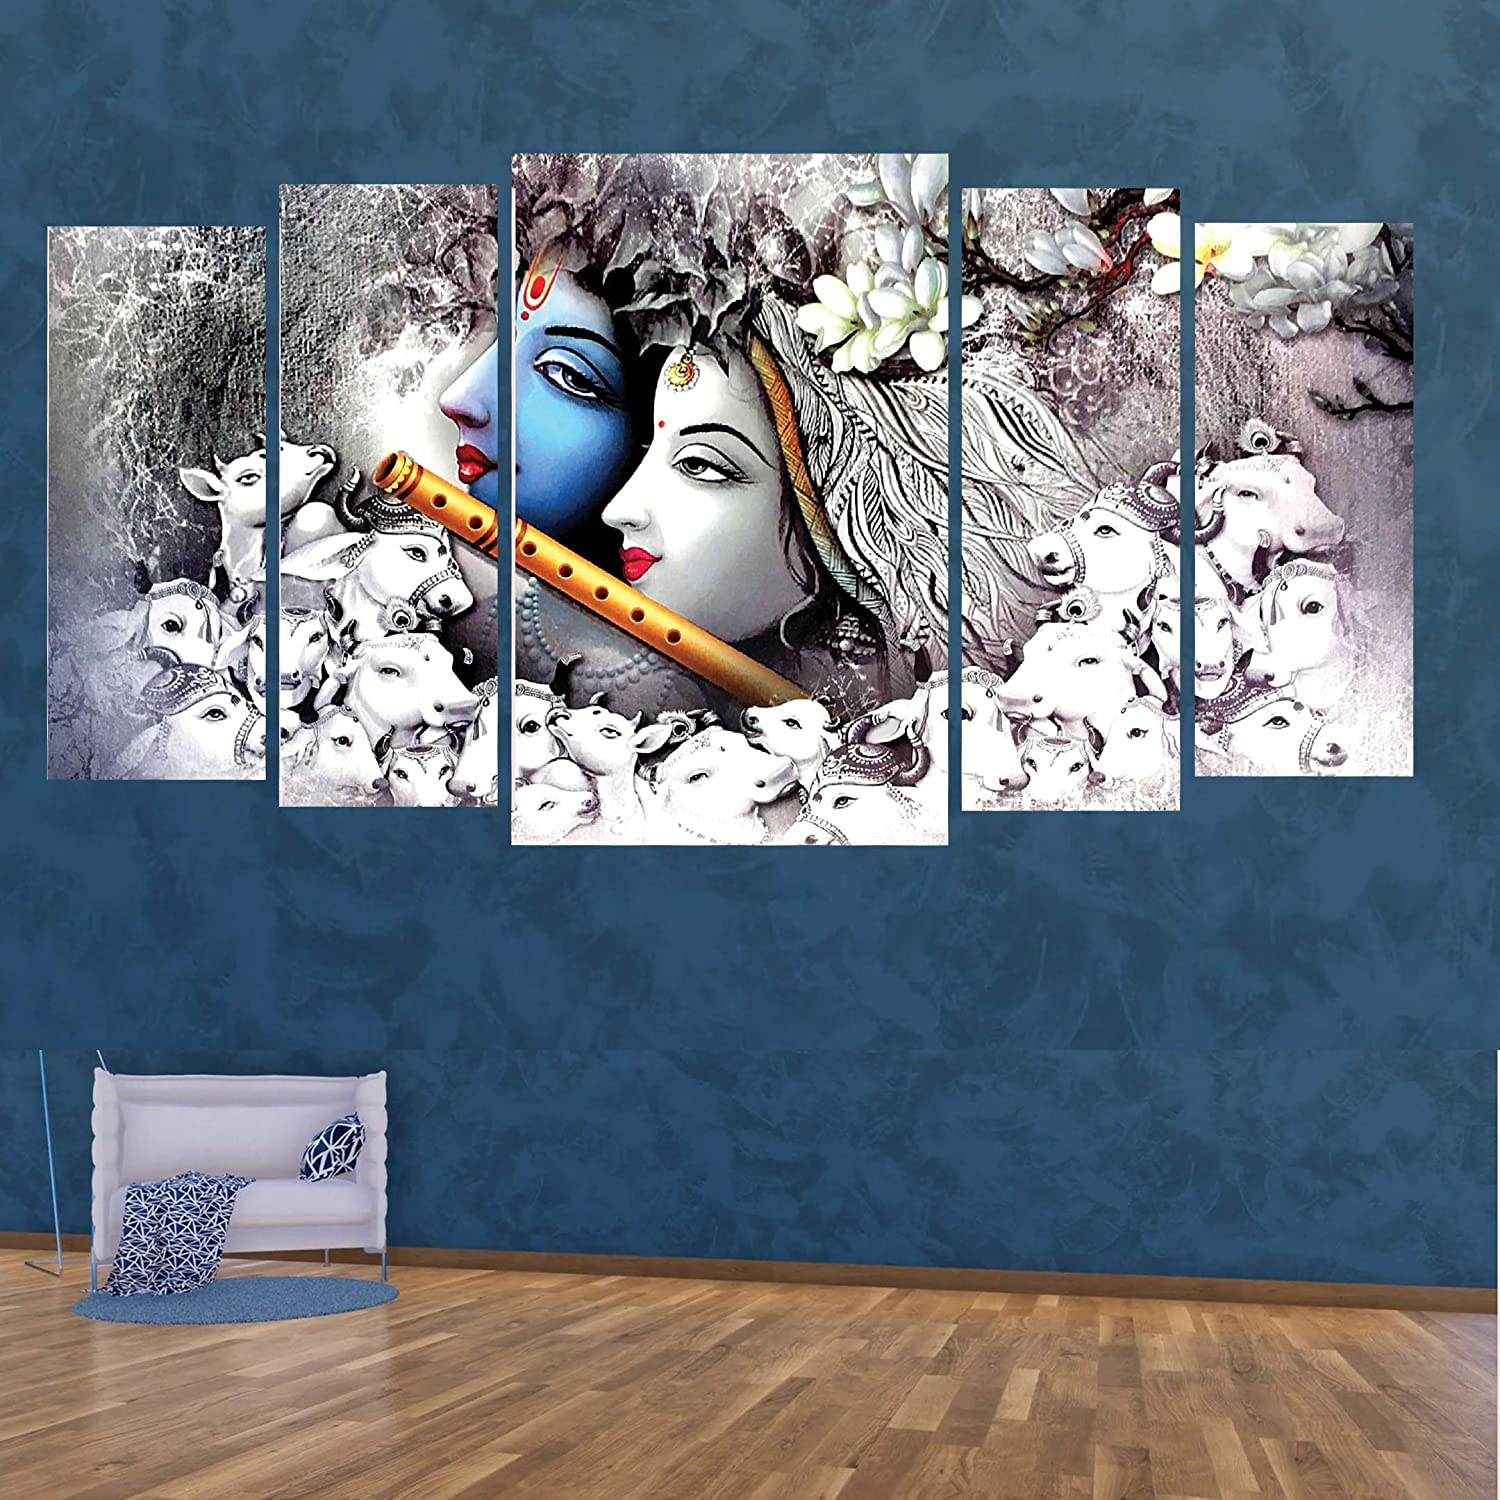 Kyara Arts Big Size Multiple Frames Beautiful Grey Radha Krishna Wall Painting For Living Room Bedroom Office Hotels Drawing Room Wooden Framed Digital Painting 60inchx30inch Amazon In Home Kitchen